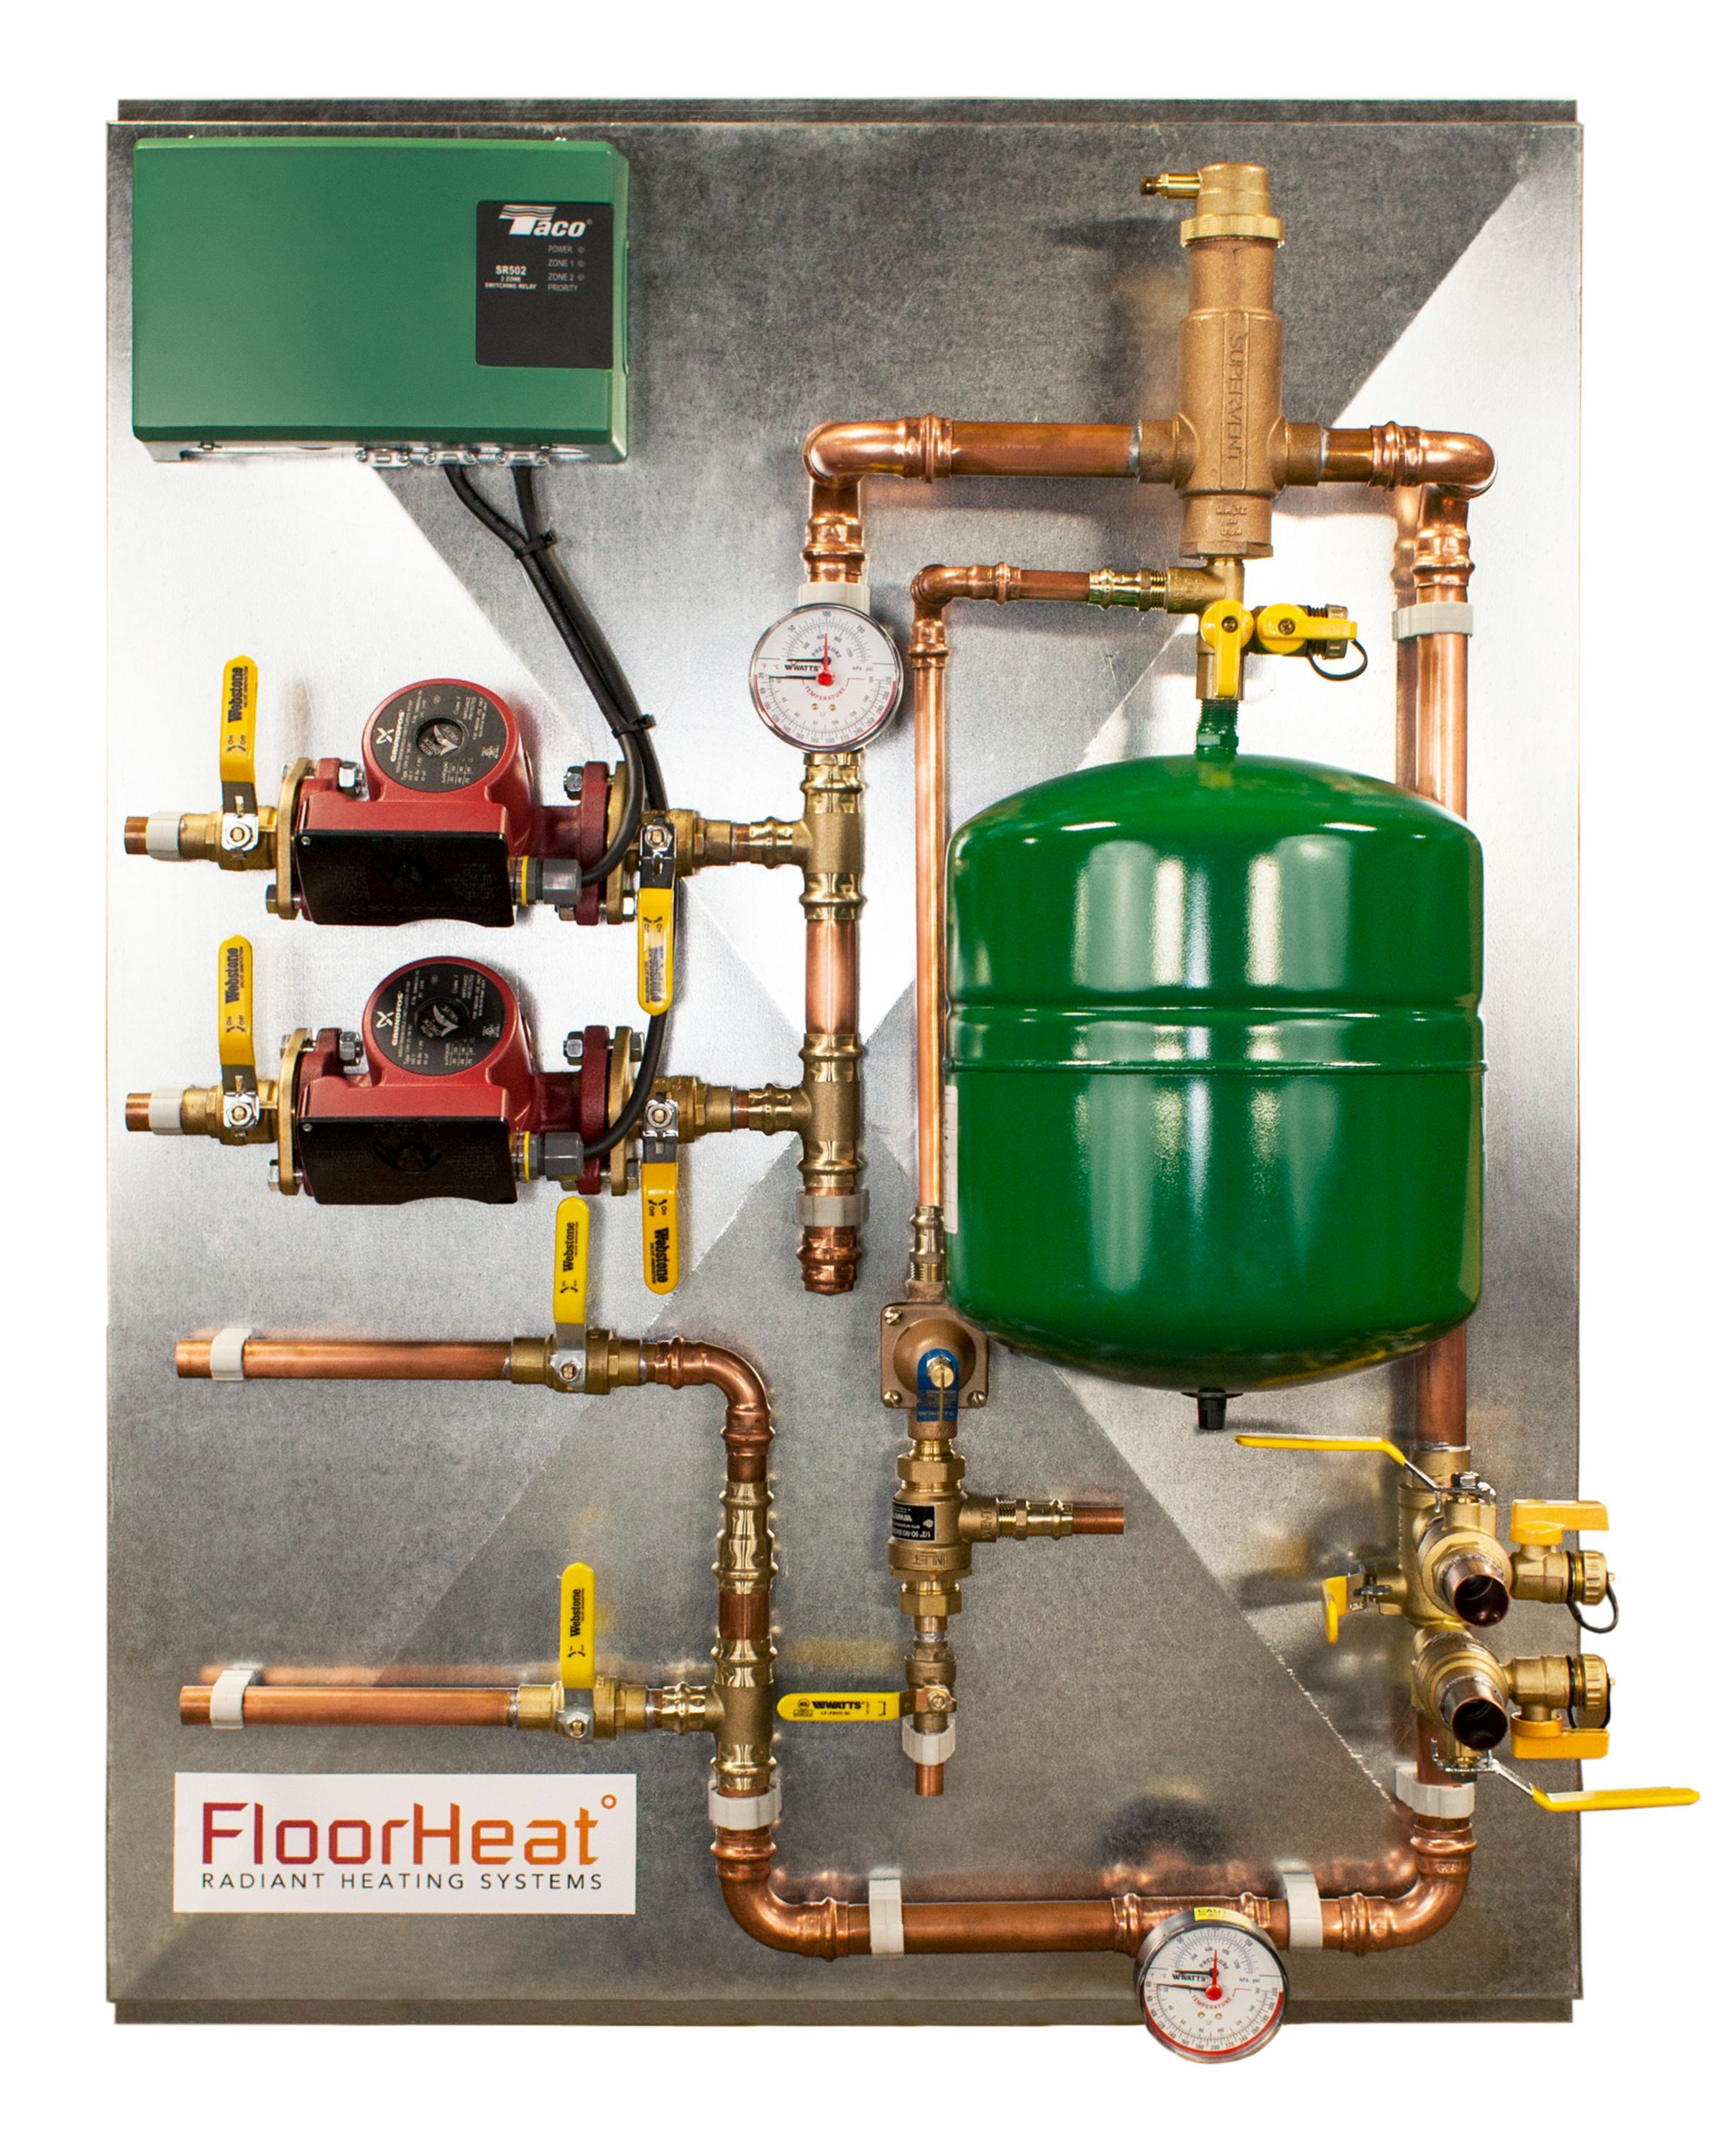 medium resolution of prefabricated distribution control panel helps to simplify your radiant heat installation our distribution panels for radiant heat have all the necessary